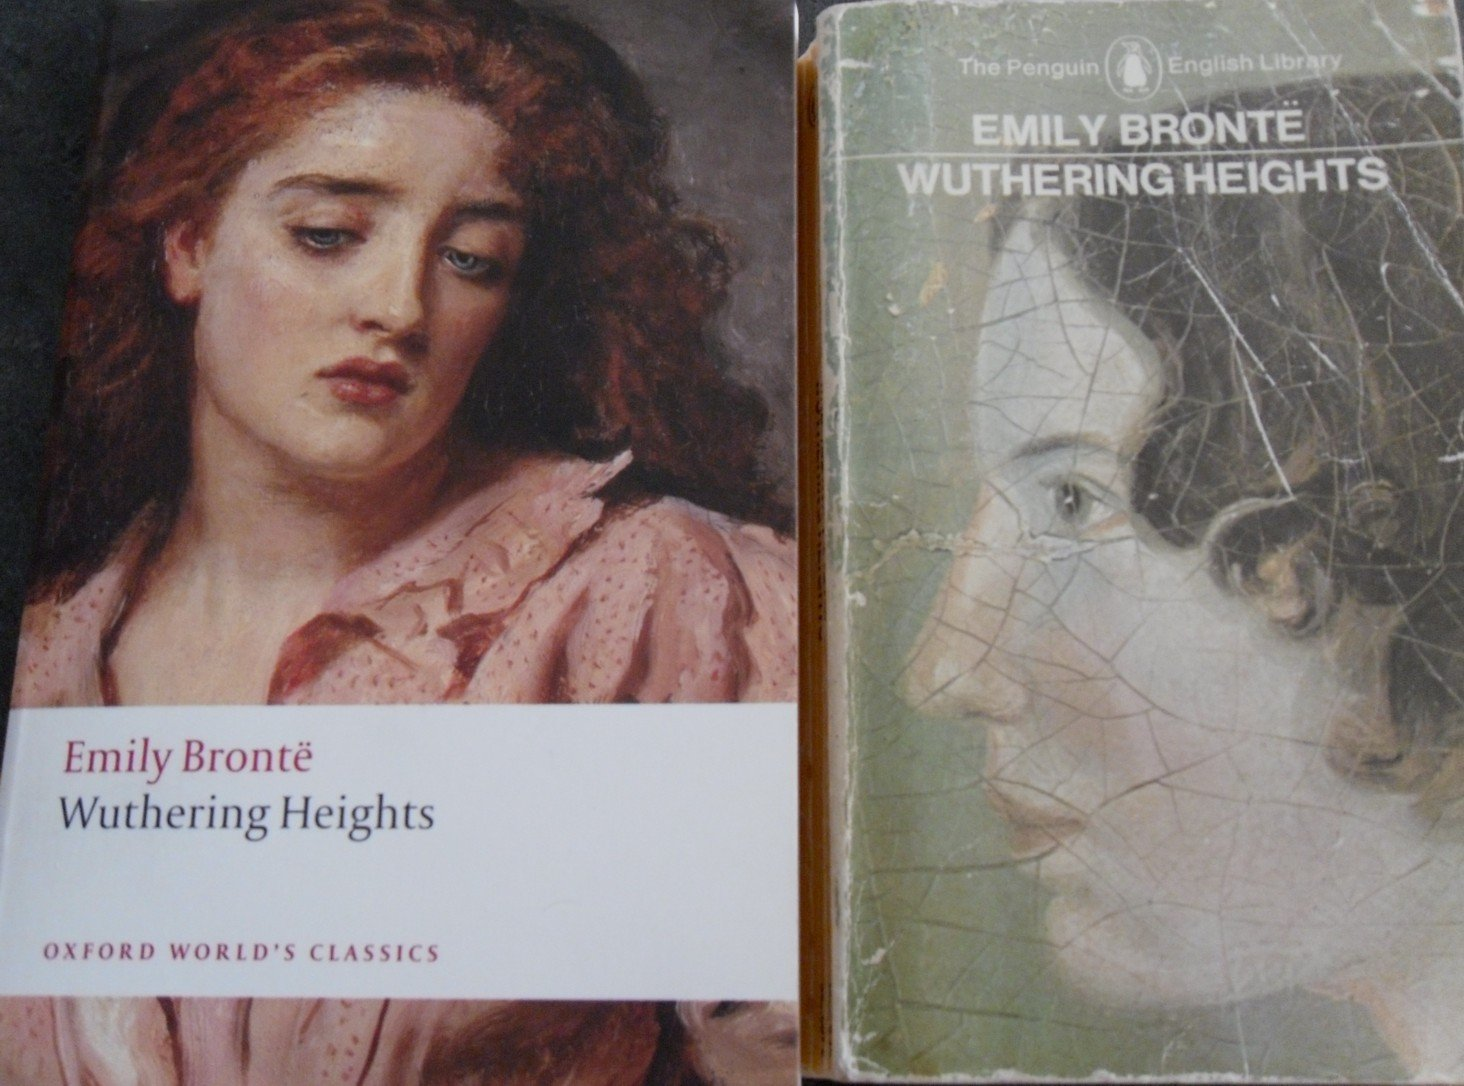 an analysis of the two characters in wuthering heights by emily bronte In her novel 'wuthering heights', emily bronte paints a picture of characters from two families: the earnshaws and the lintons she uses many.